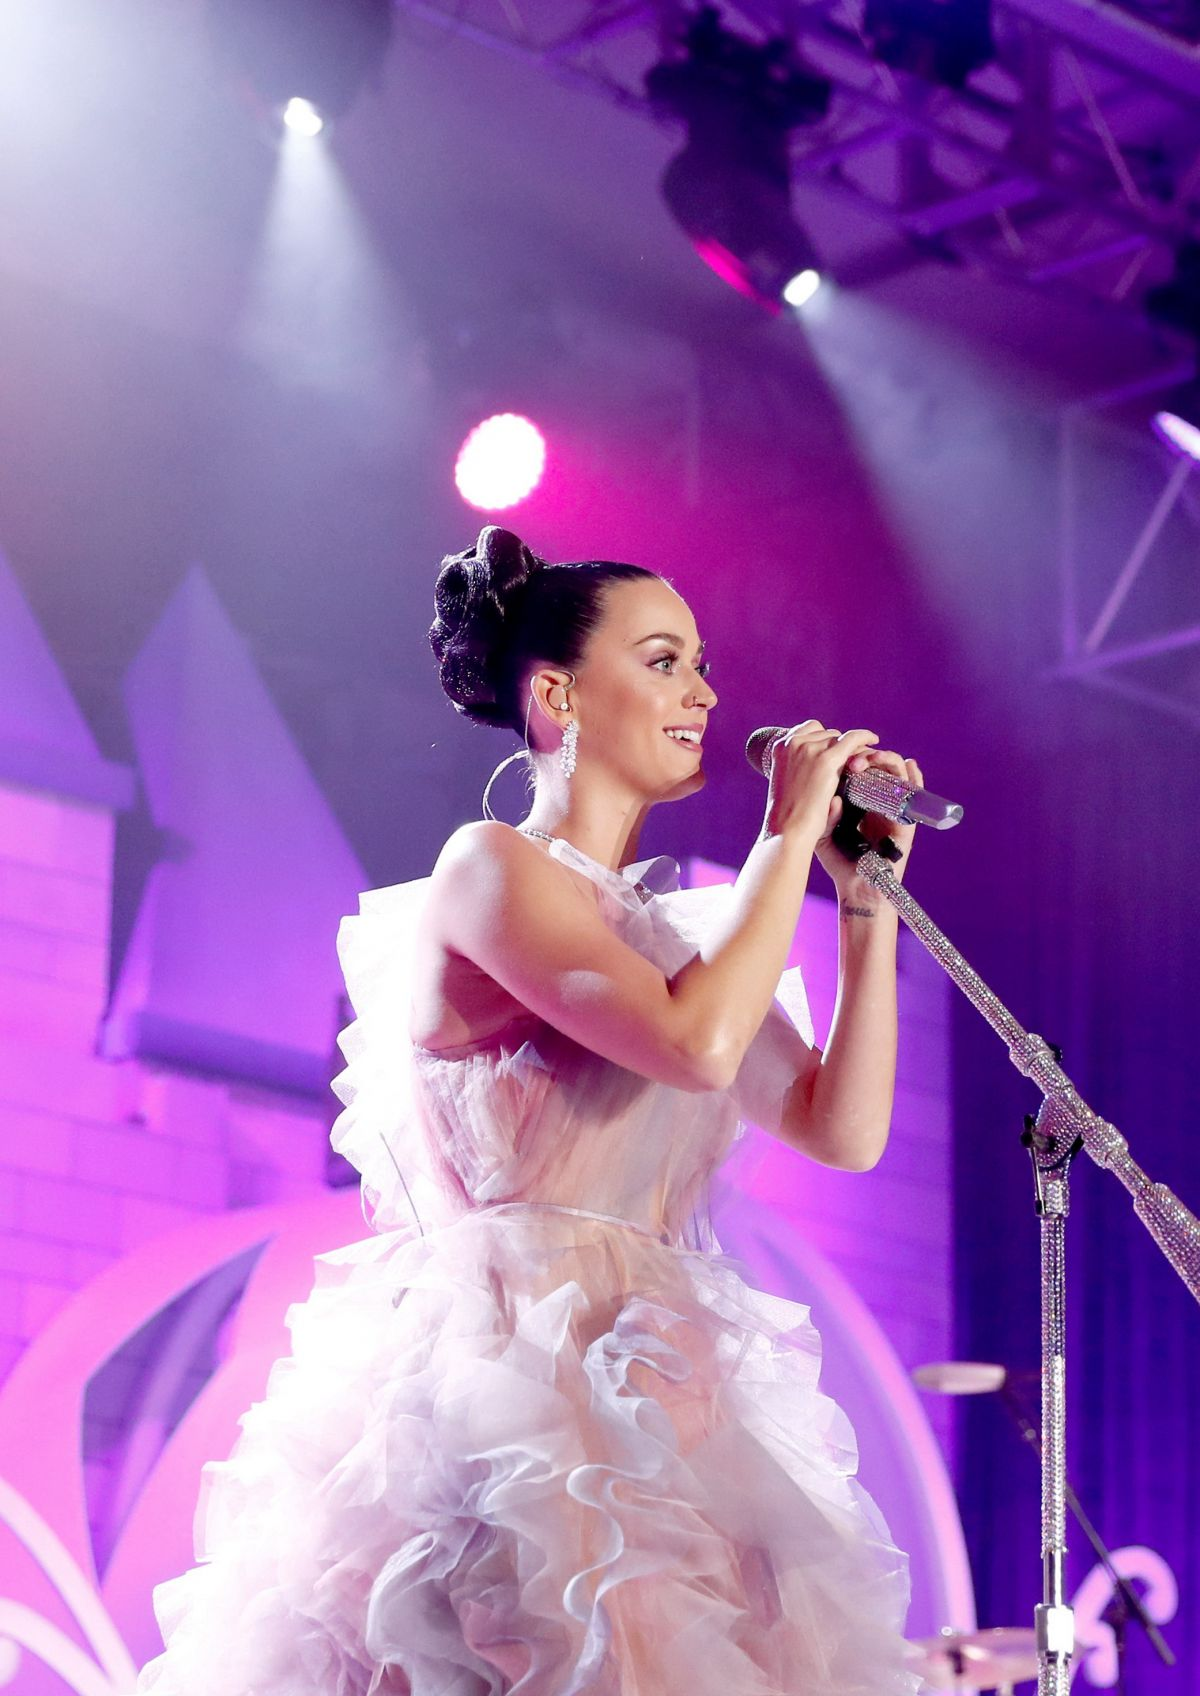 KATY PERRY Performs at 2016 Children's Hospital Los Angeles Once Upon a Time Gala 10/15/2016